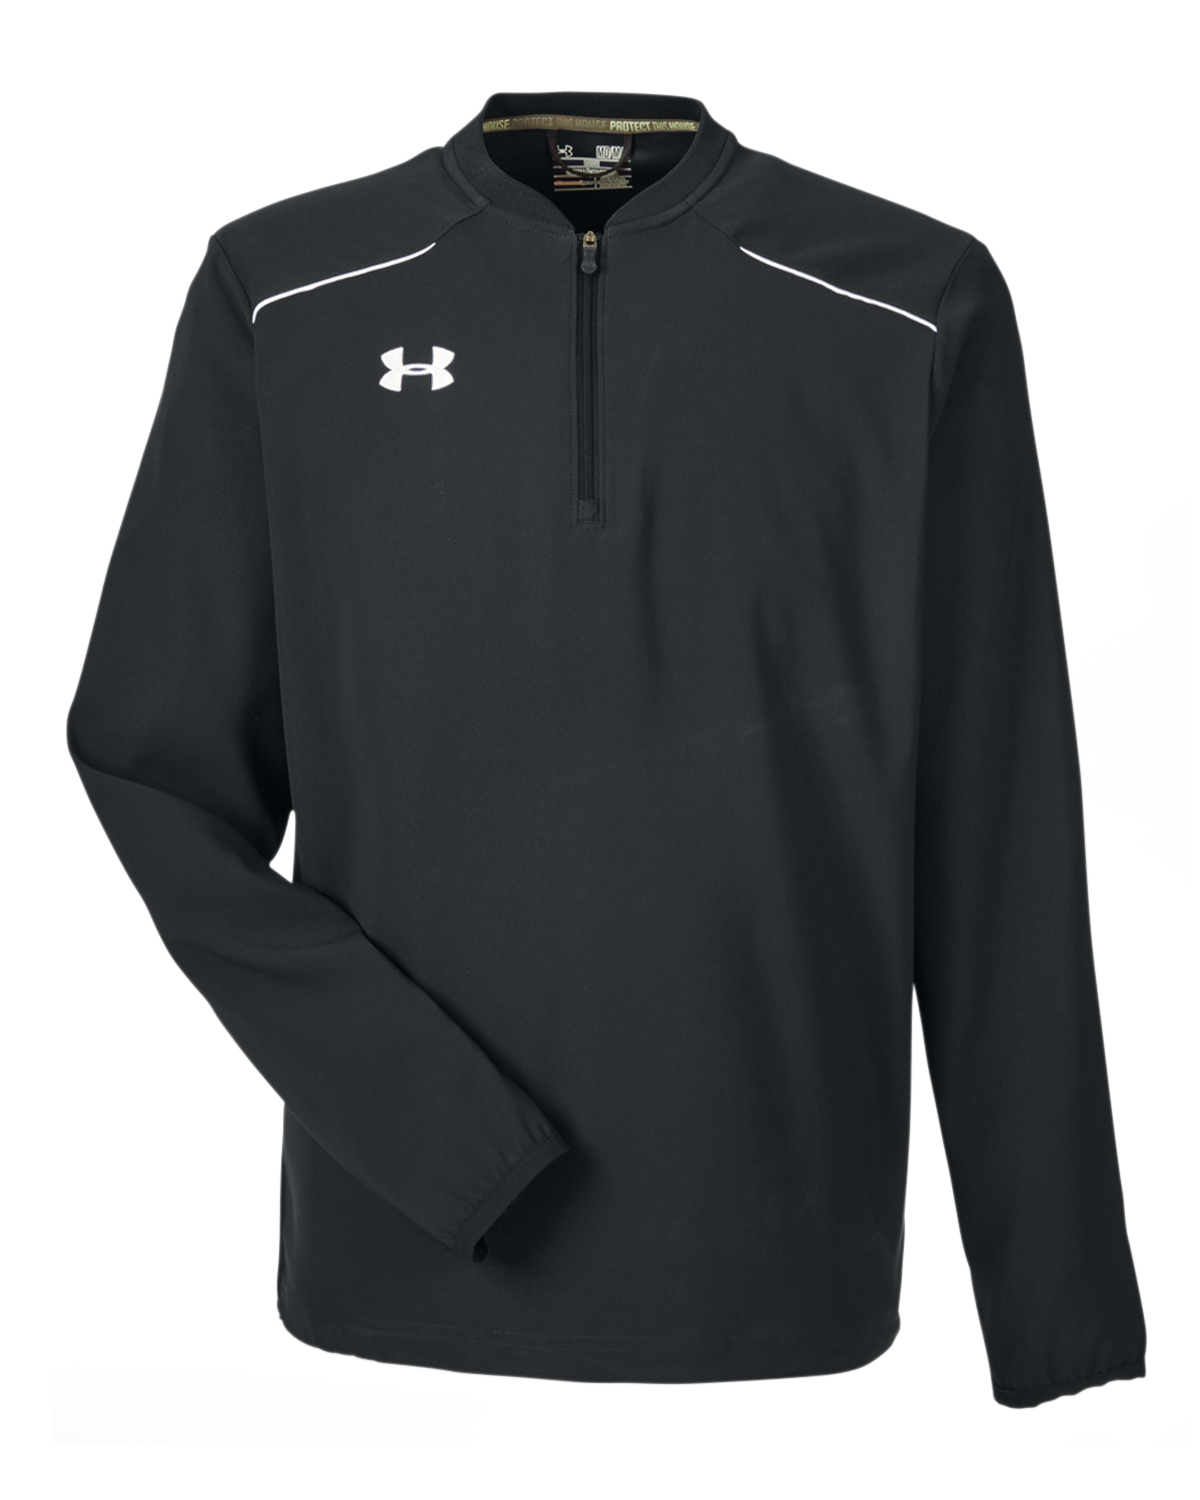 Under Armour 1252003 - Men's Ultimate Long Sleeve Windshirt